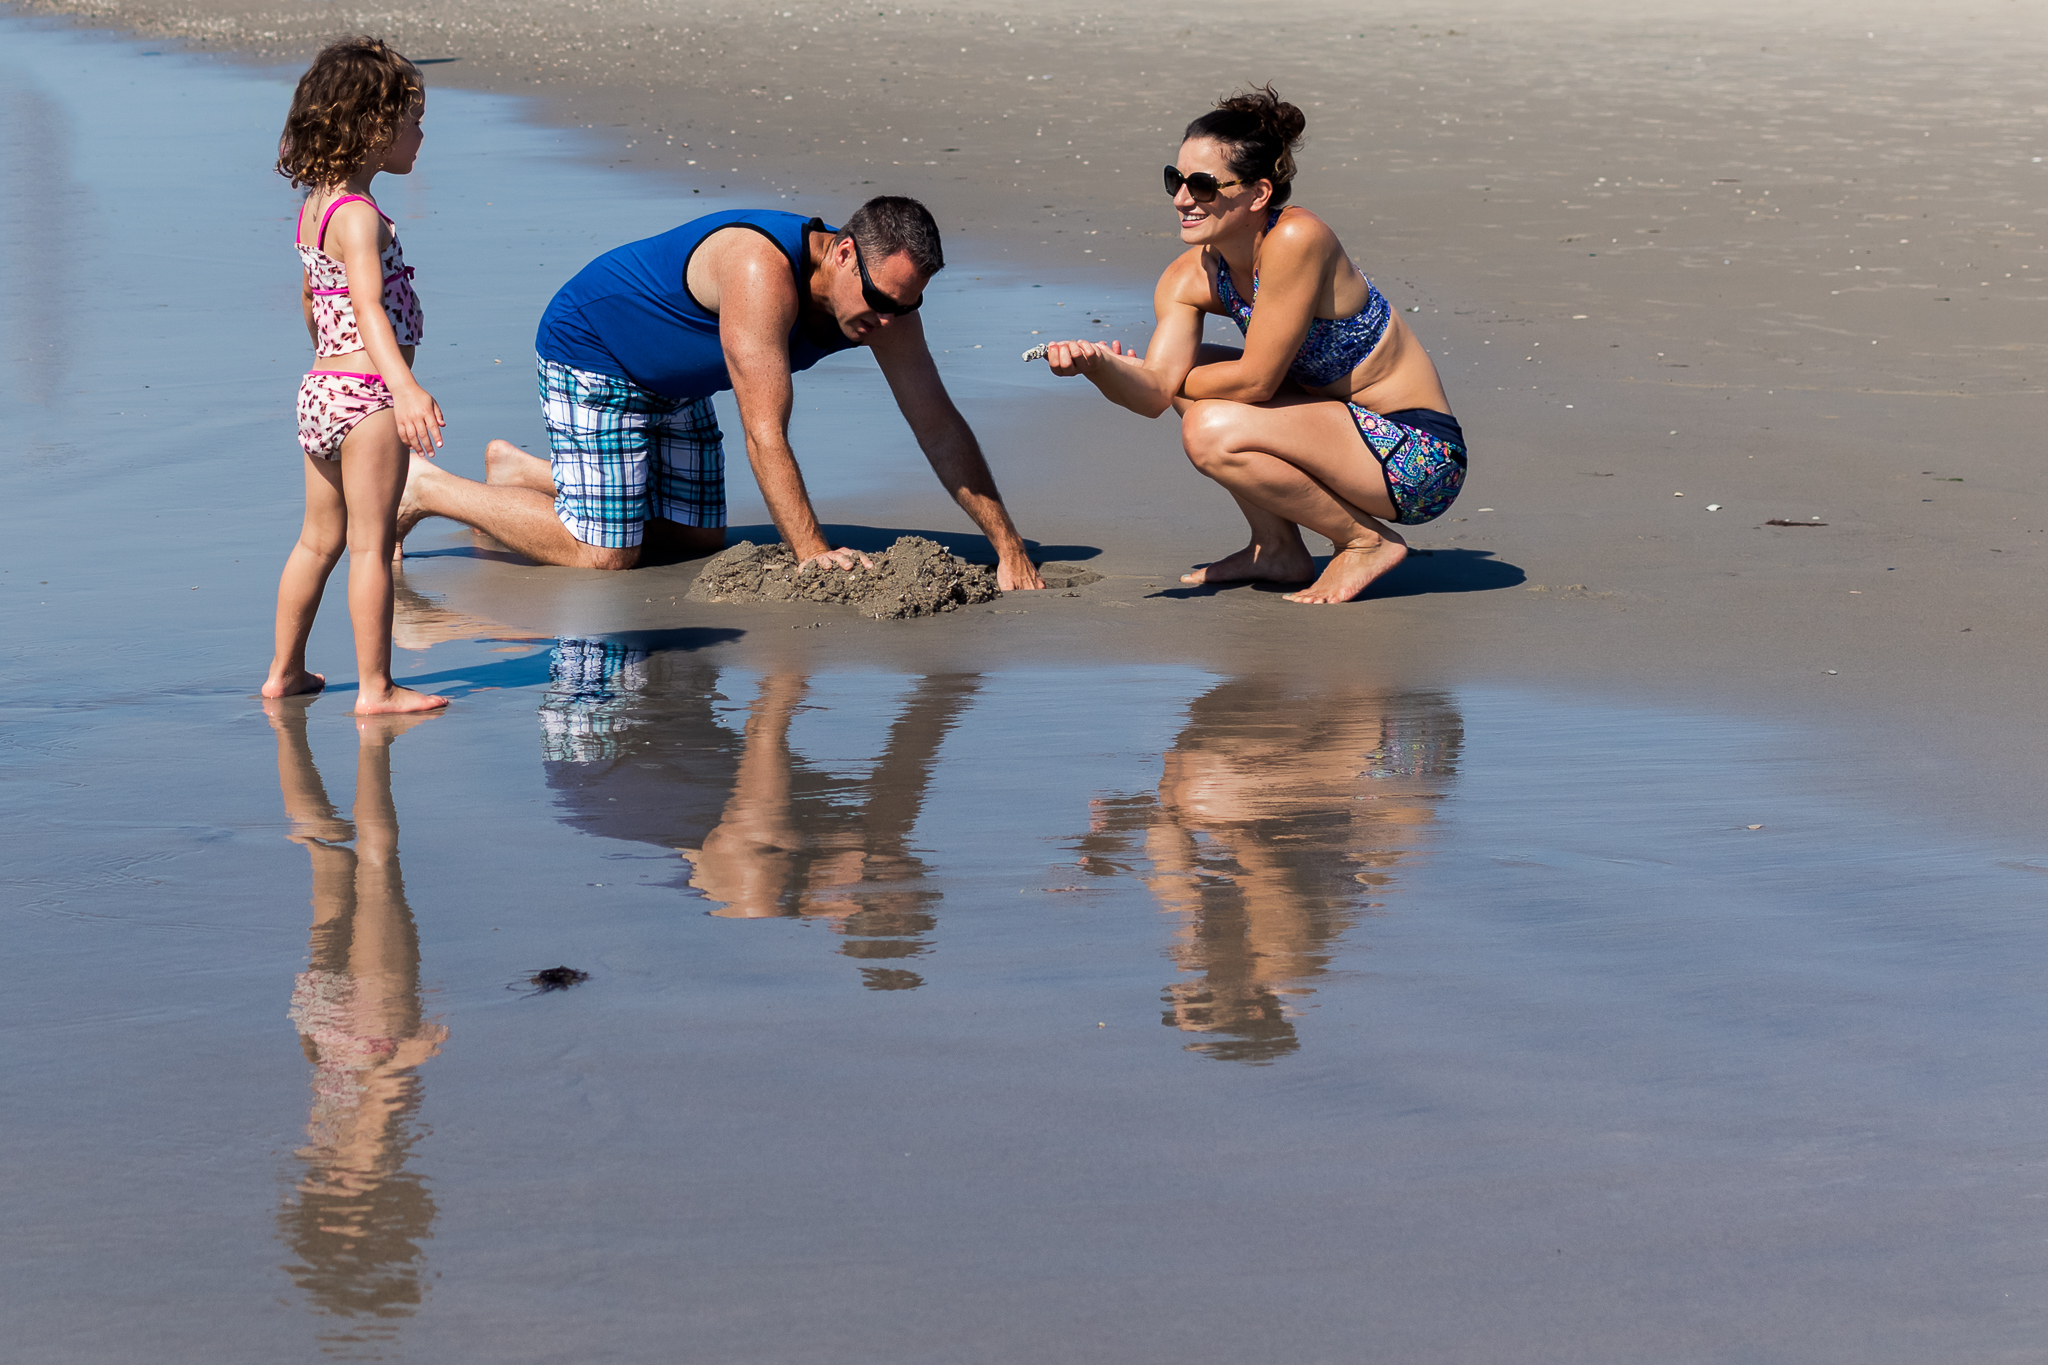 Nancy Elizabeth Photography | Jersey Shore Documentary Beach Photographer | Mom and Dad pLaying with Daughter in Sand with Reflection